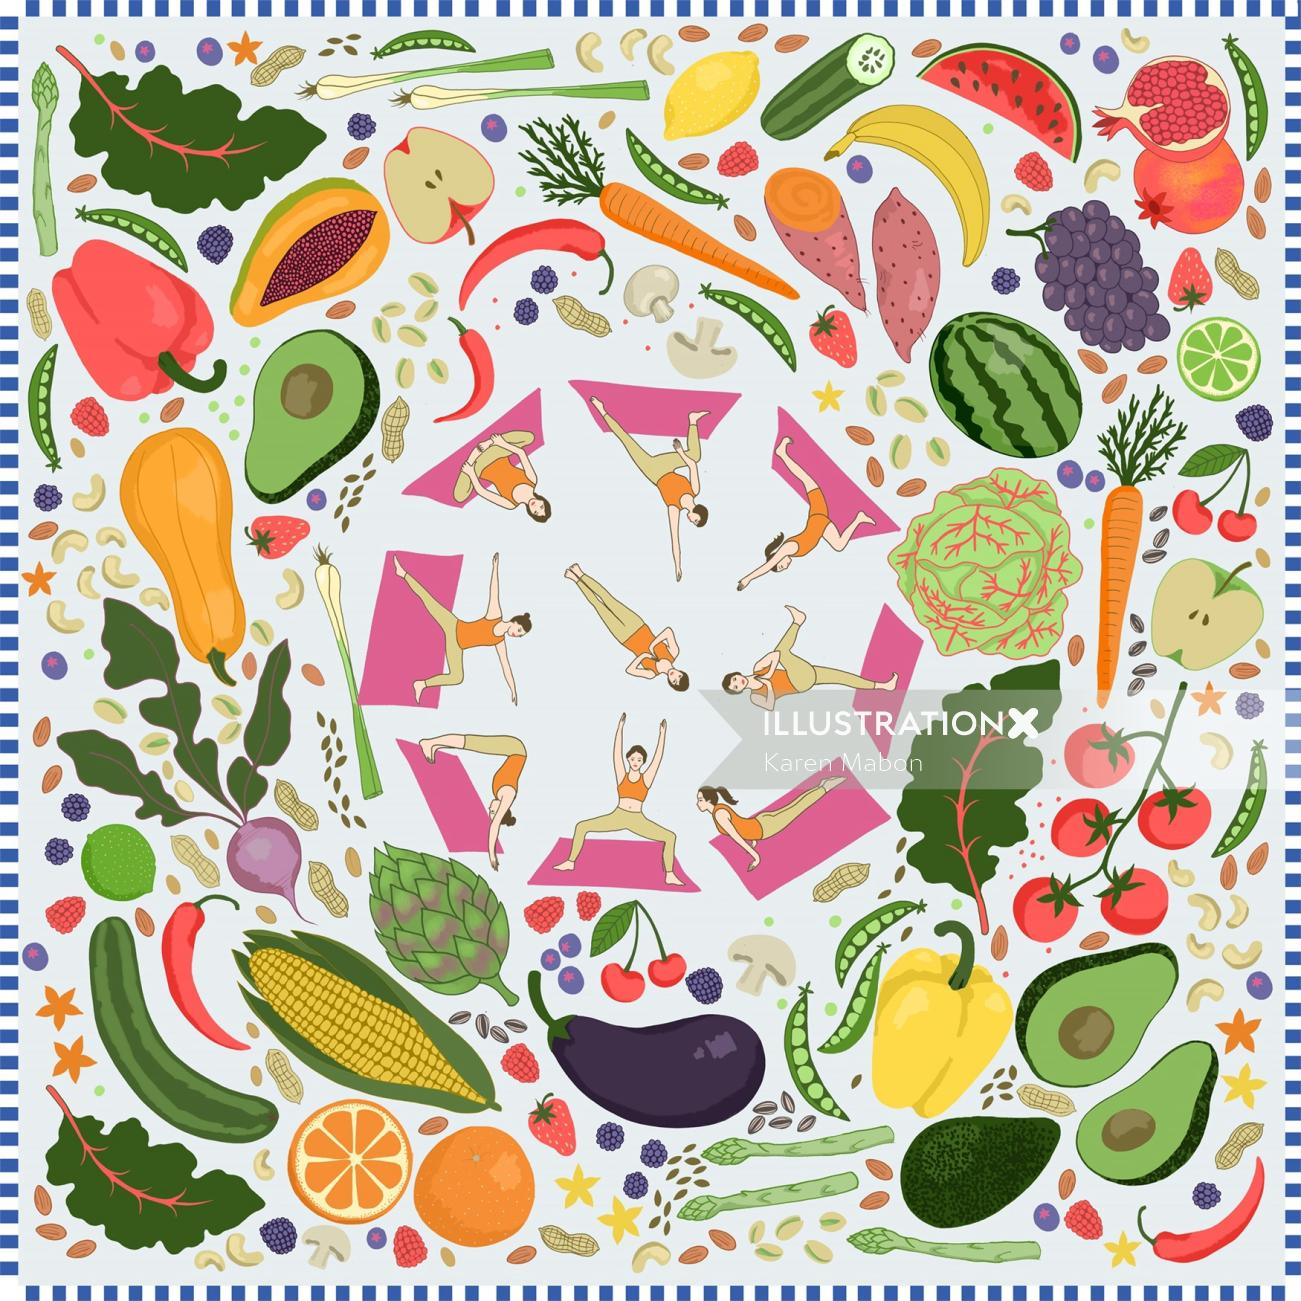 Healthy living and yoga designs printed by Karen Mabon